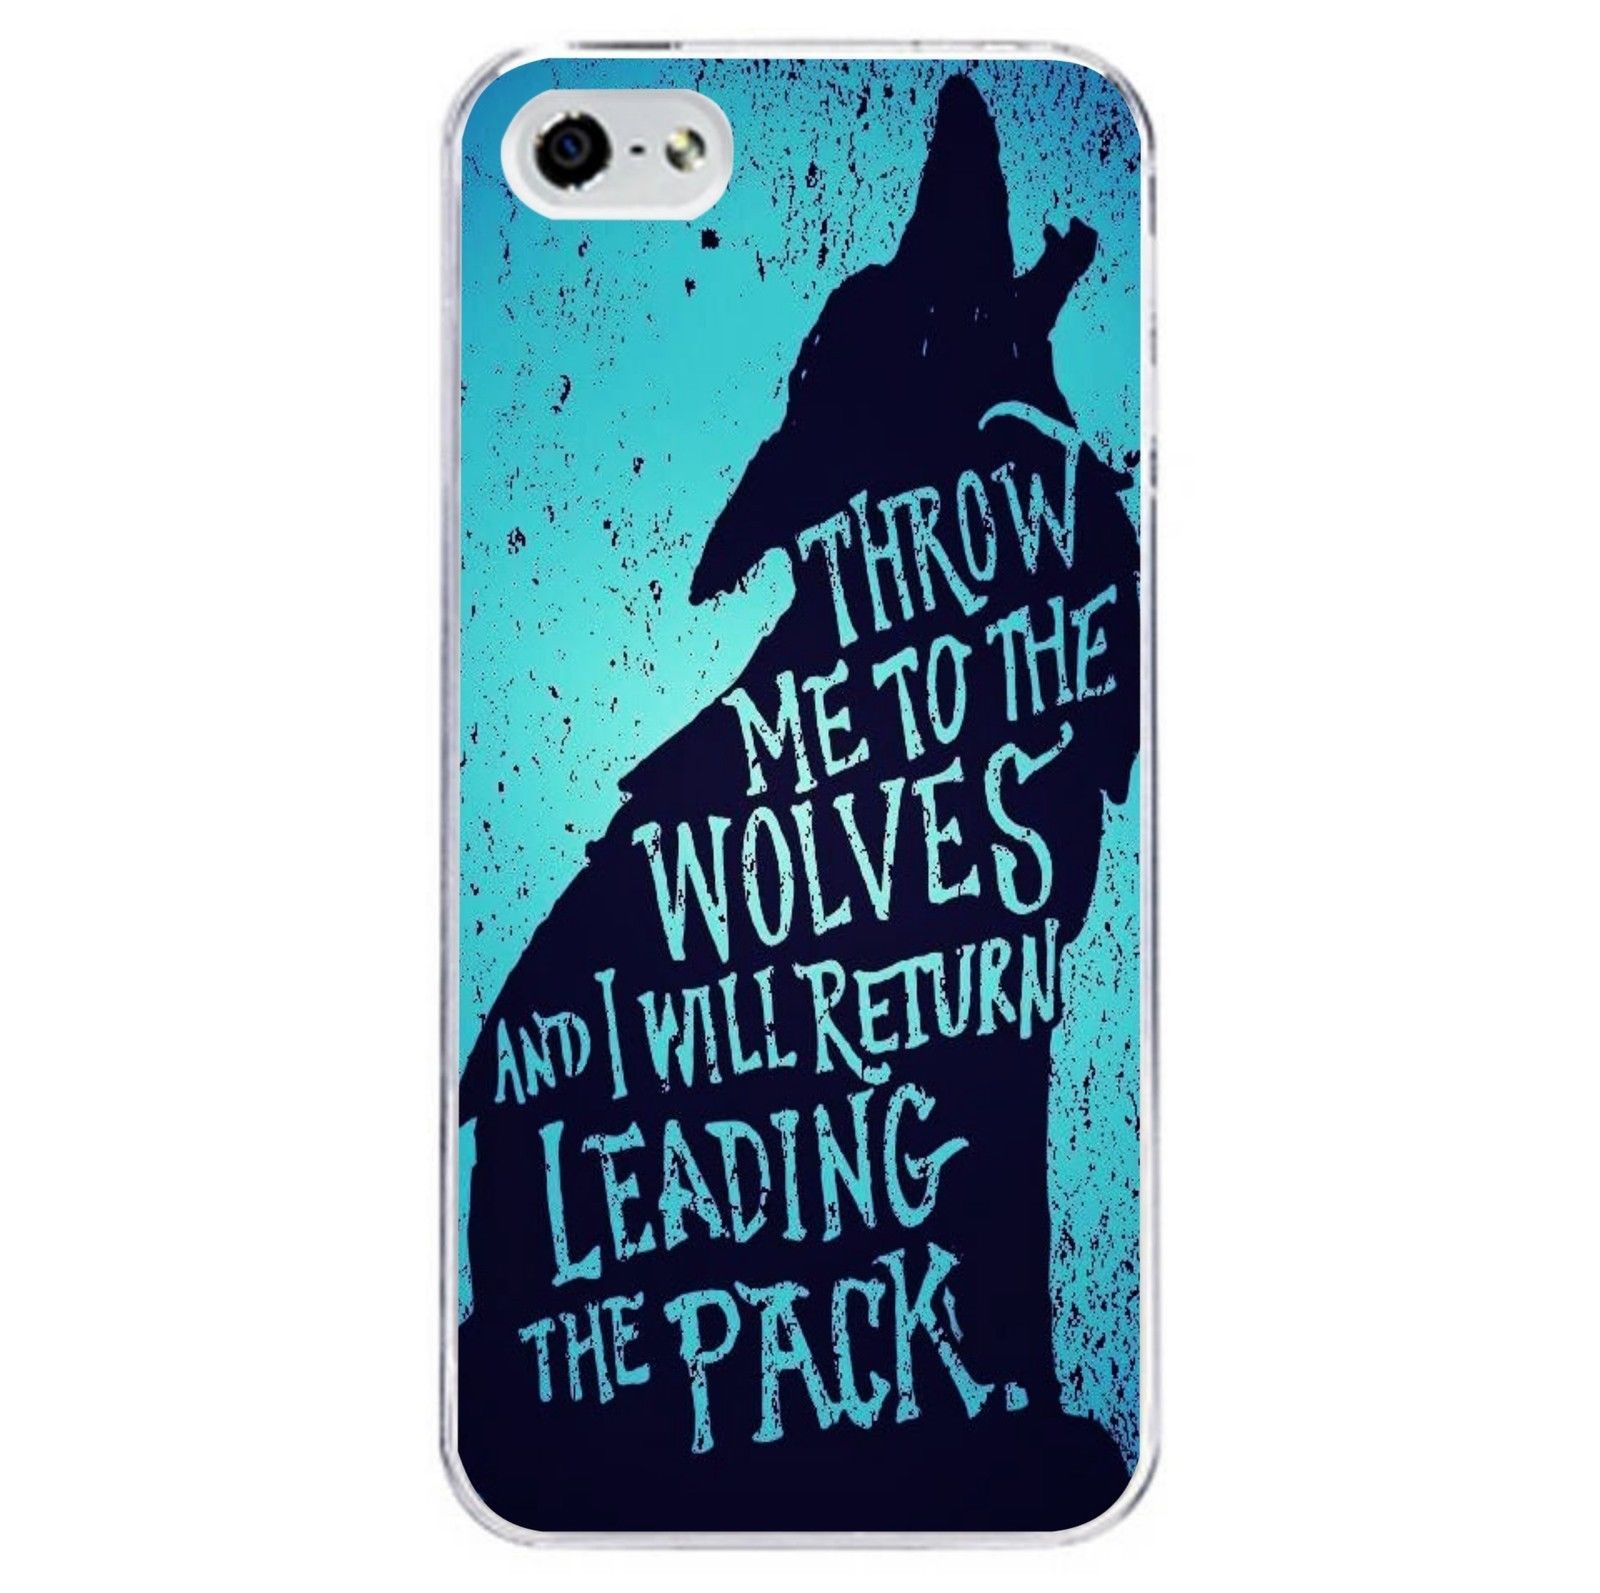 Wolf Quote Phone Case Cover Fits Iphone 4S 5C 5 5S 6 6S 6